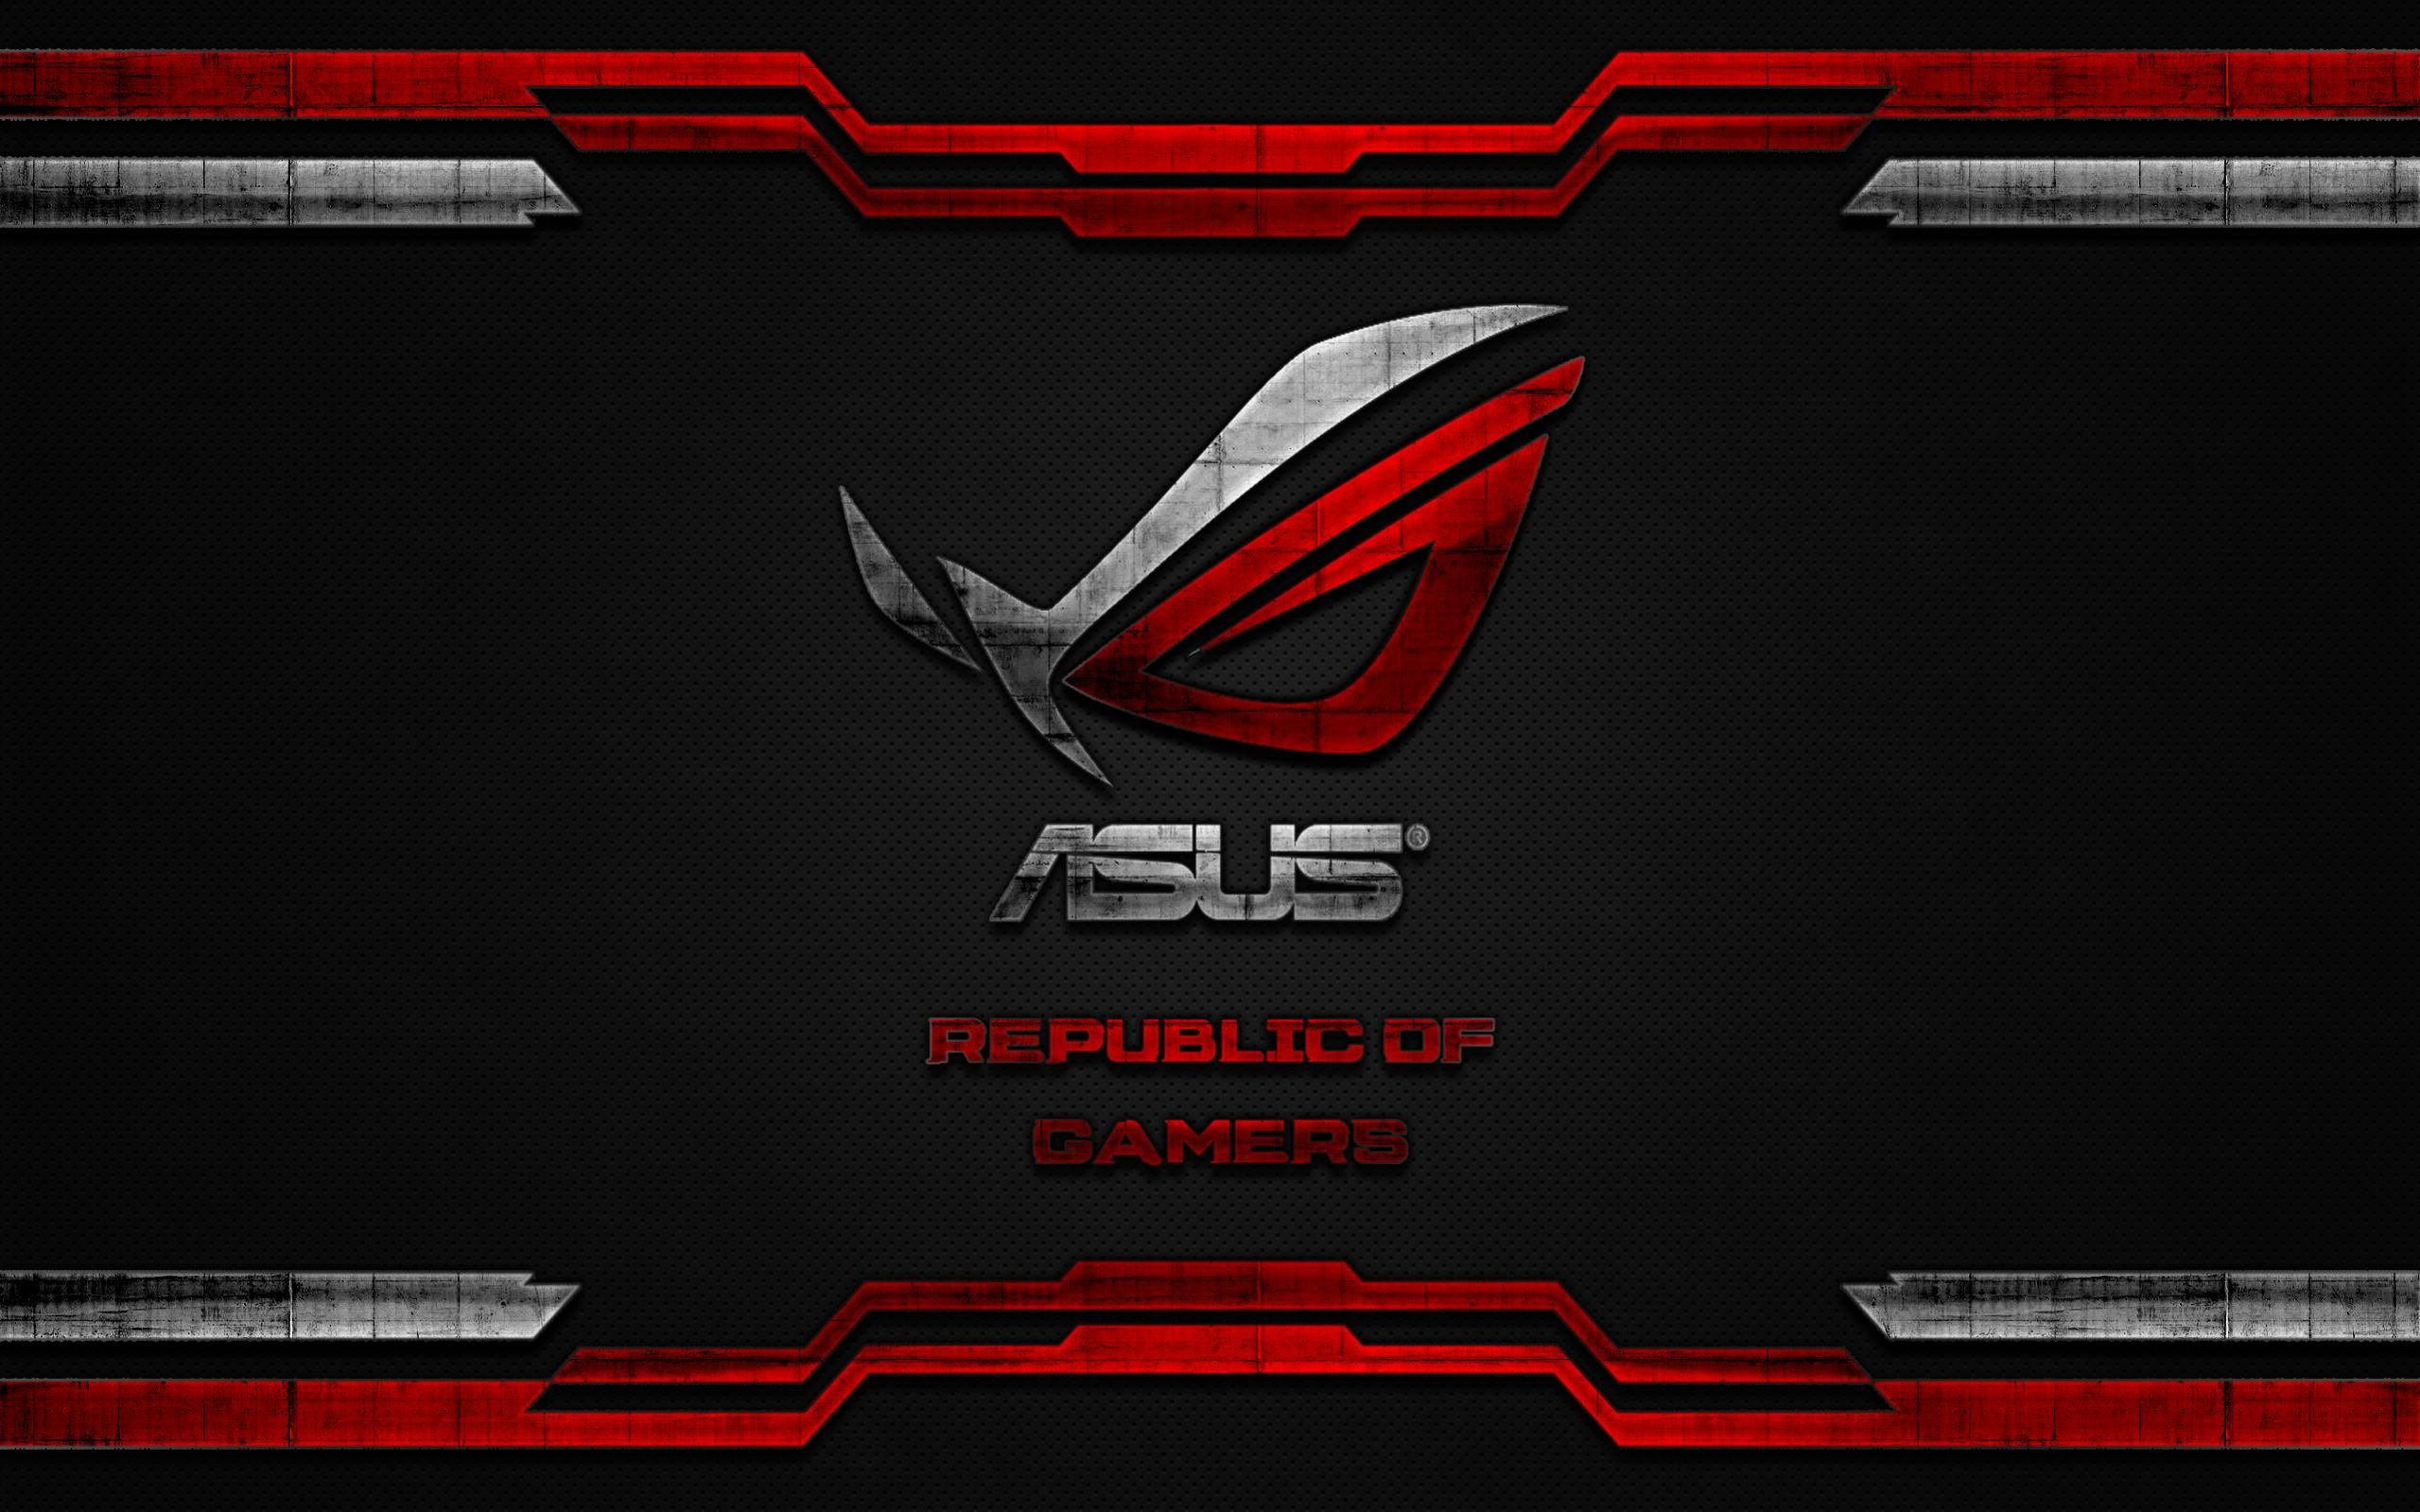 Asus Rog Wallpaper High Quality